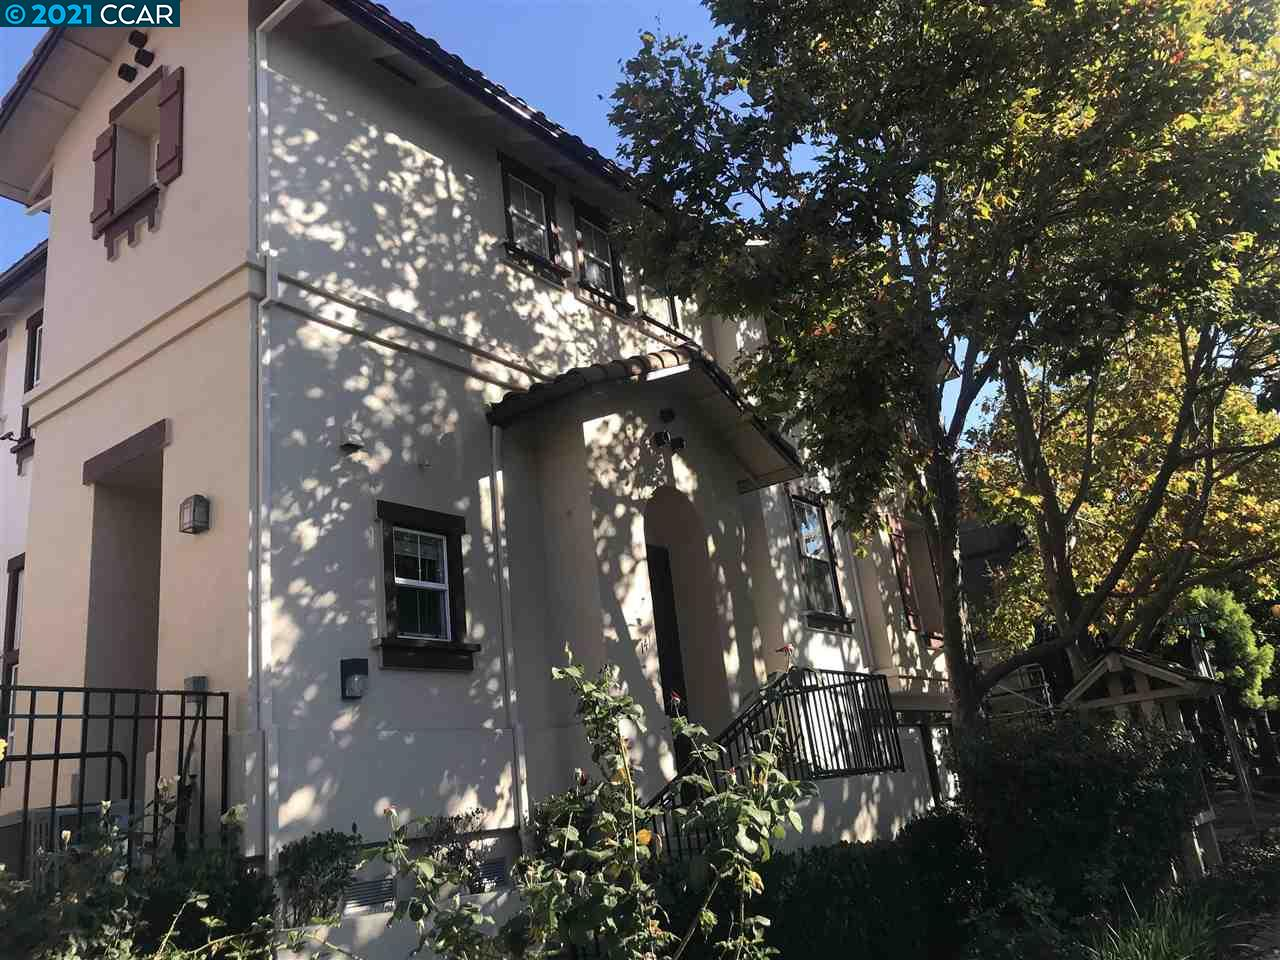 Absolutely beautiful tri level town house,3 bedrooms 2.5 bath and 2 car garage attached, in a gated community. All three bedrooms are located on the third floor, walking closet in master bedroom, washer and dryer  located in the laundry closet in upper level. Centrally located, close to freeways, shopping centers, movie theater, restaurants etc. Walking distance to Helms Middle School and Contra Costa Collage.